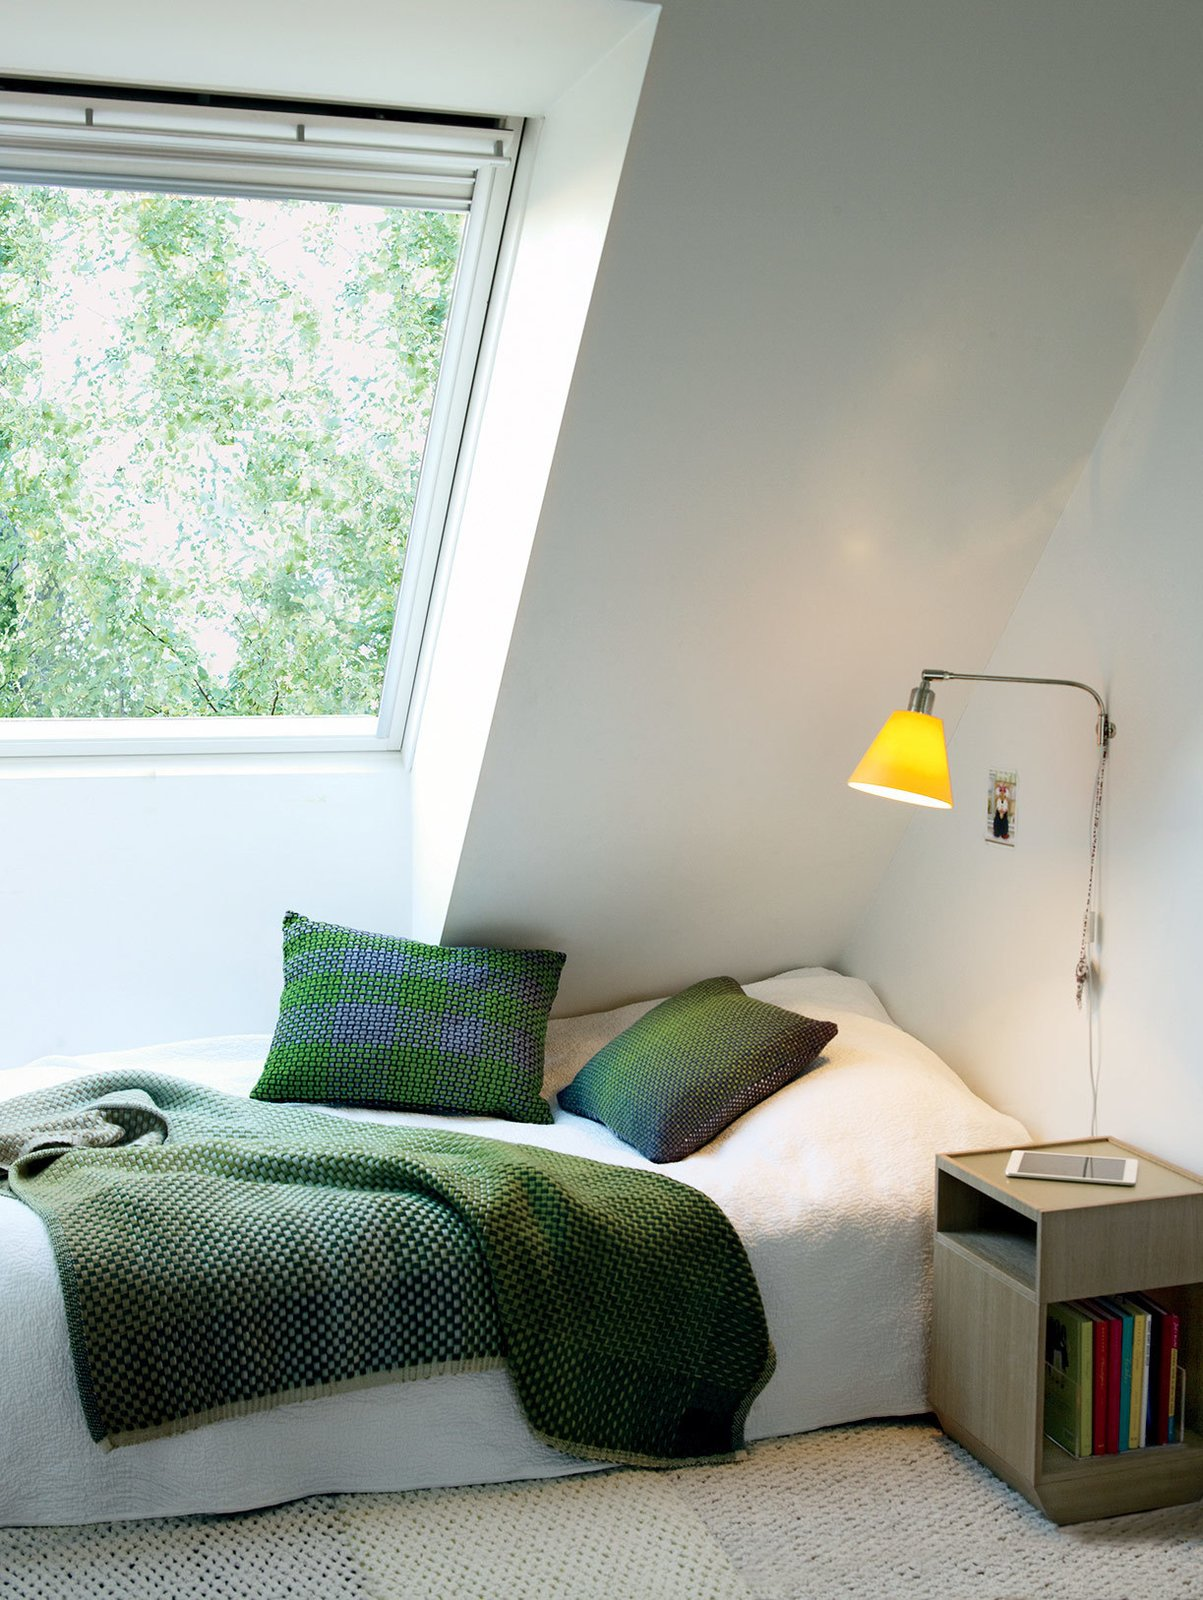 Upstairs, each daughter's bedroom was designed as a sanctuary, with cozy touches like Simon Key Bertman quilts and cushions. The bed and Pile bedside table by Jessica Signell Knutsson sit on top of a Carpet Honeycomb by designer Maria Löw. Tagged: Bedroom and Bed.  Photo 8 of 12 in This Bright Green Prefab in Sweden Looks Just Like a Monopoly House